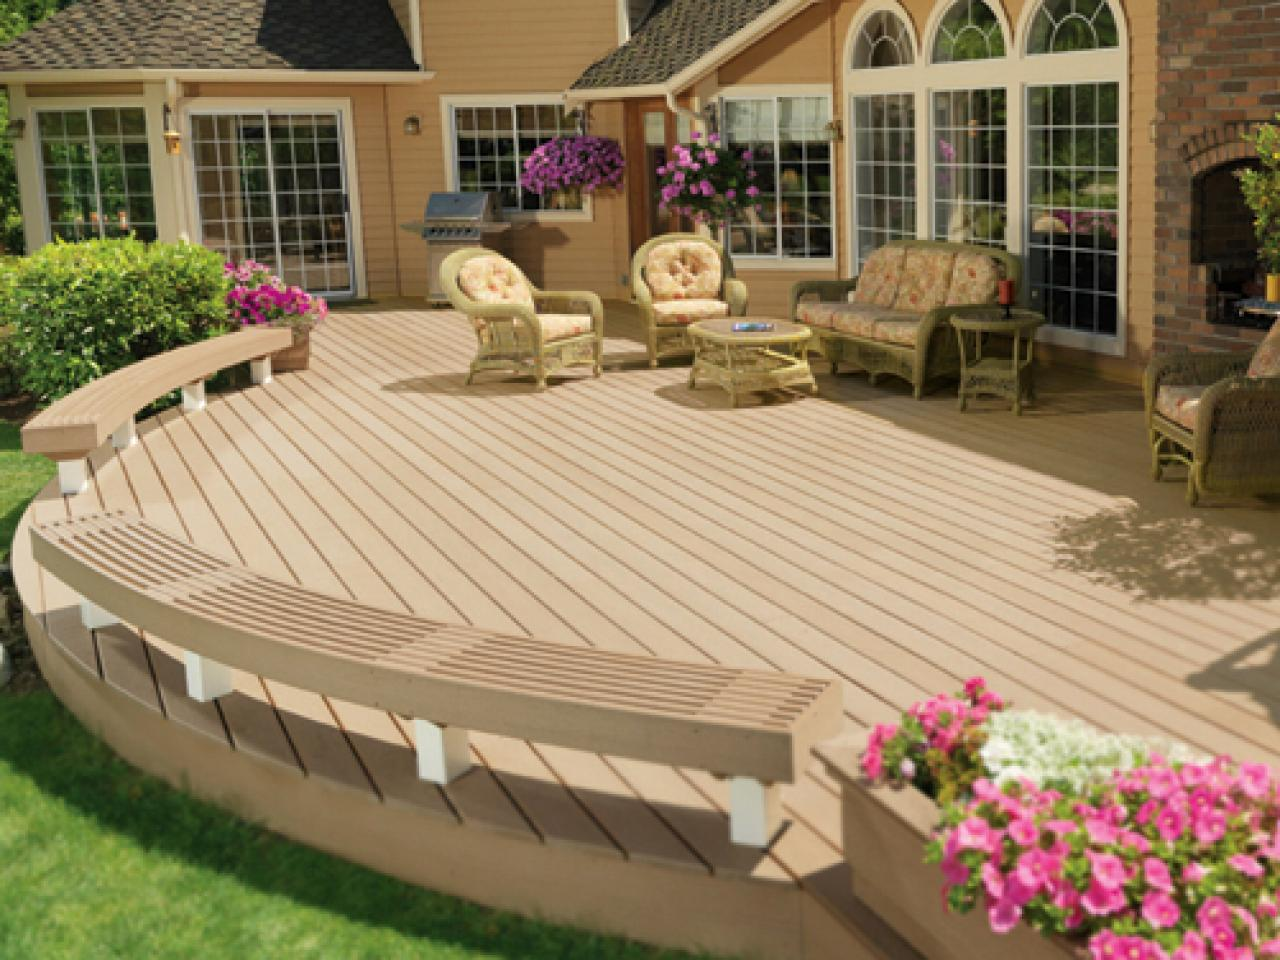 Deck designs ideas pictures hgtv for Circular garden decking